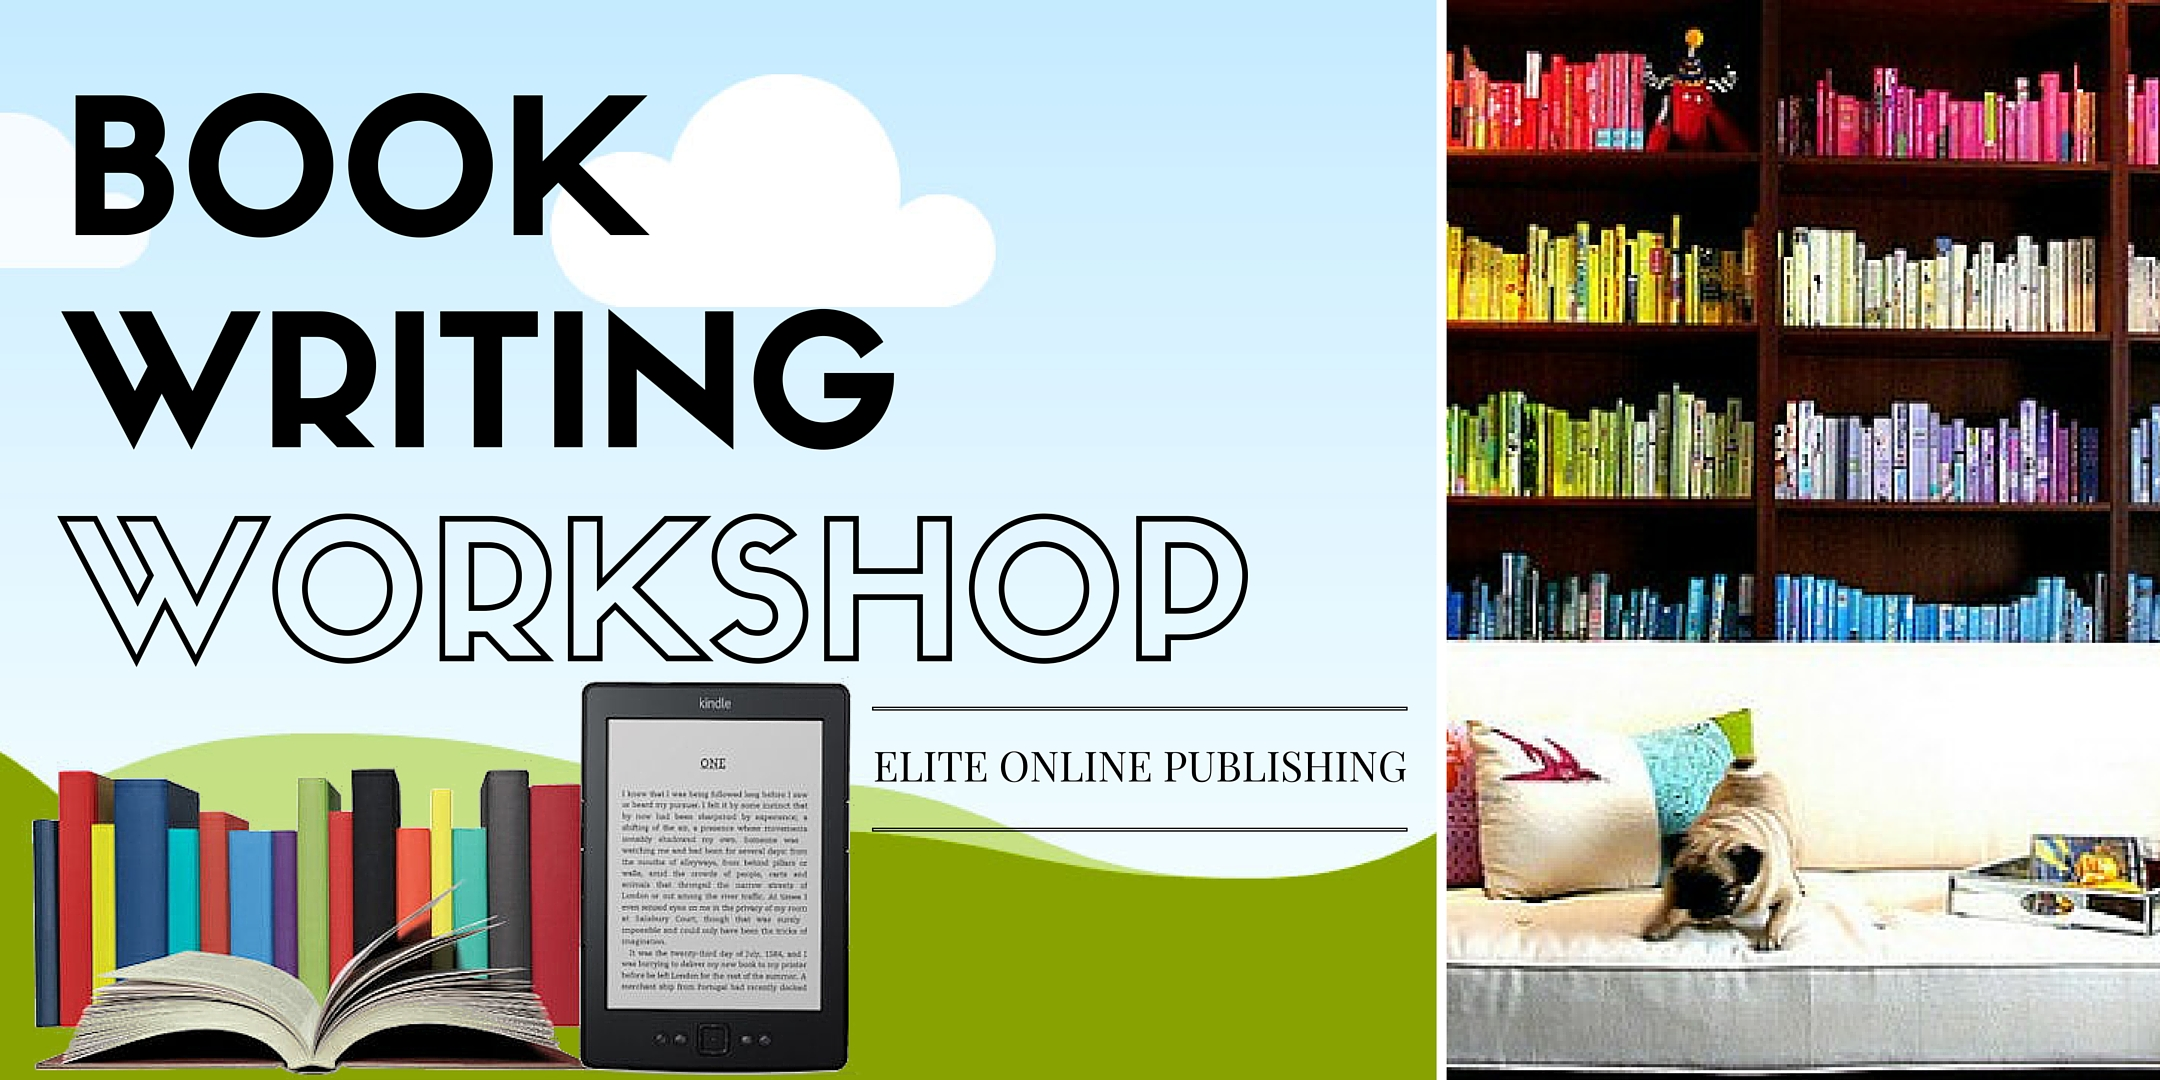 BOOK WRITING WORKSHOP in TX and UT